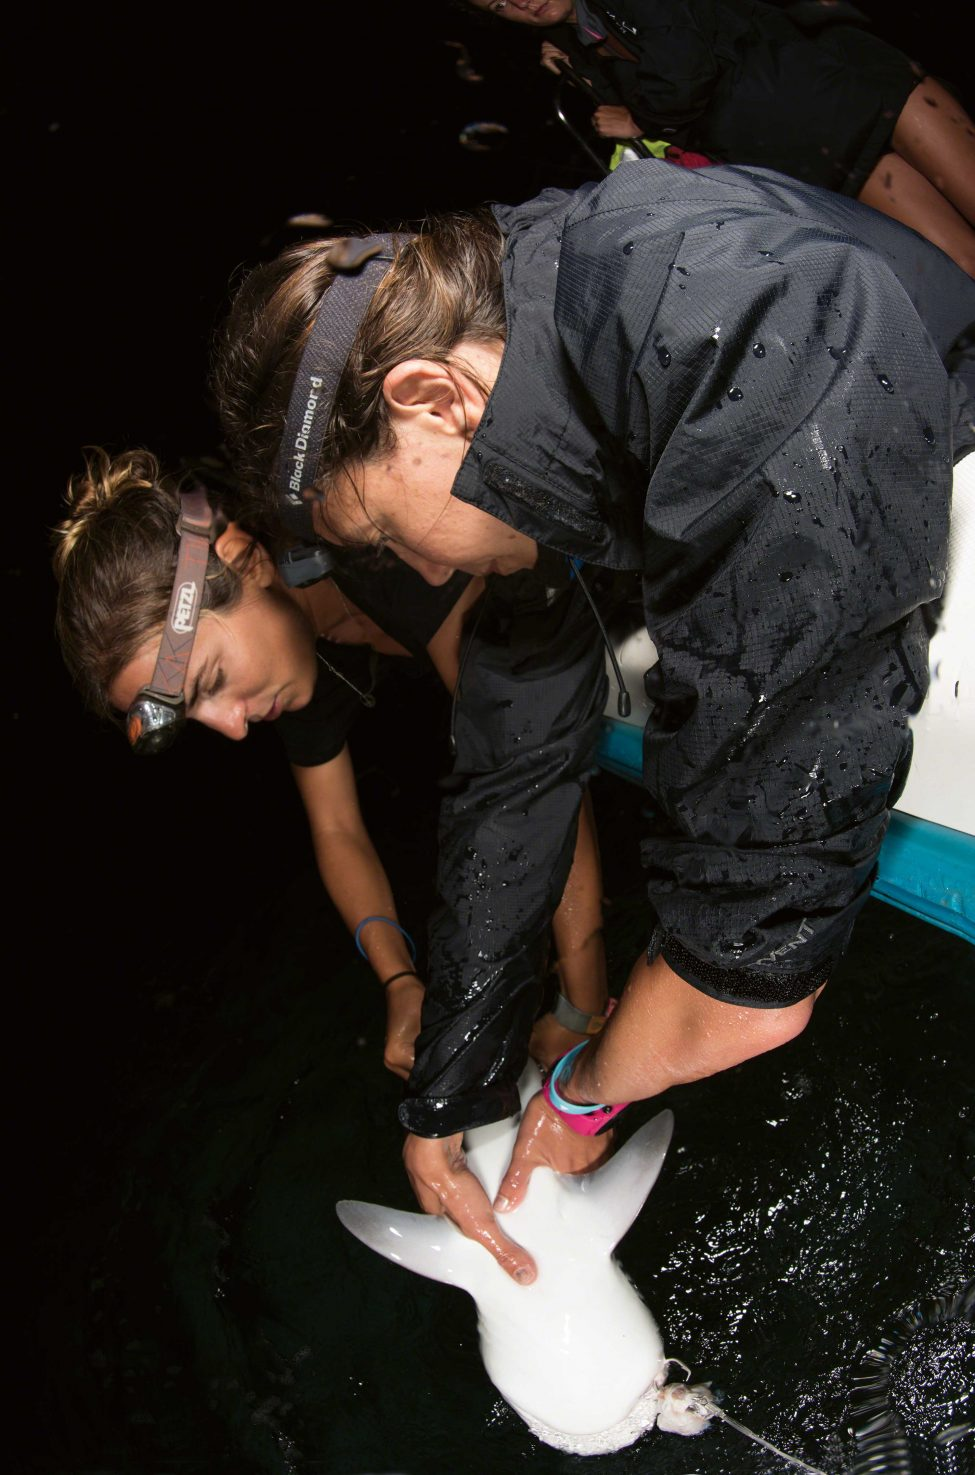 Eva Meyers (right) of the Angel Shark Project and Félicie Dhellemmes of the Bimini Biological Field Station work up a small shark at night.<br /> Photo by Sirachai Arunrugstichai